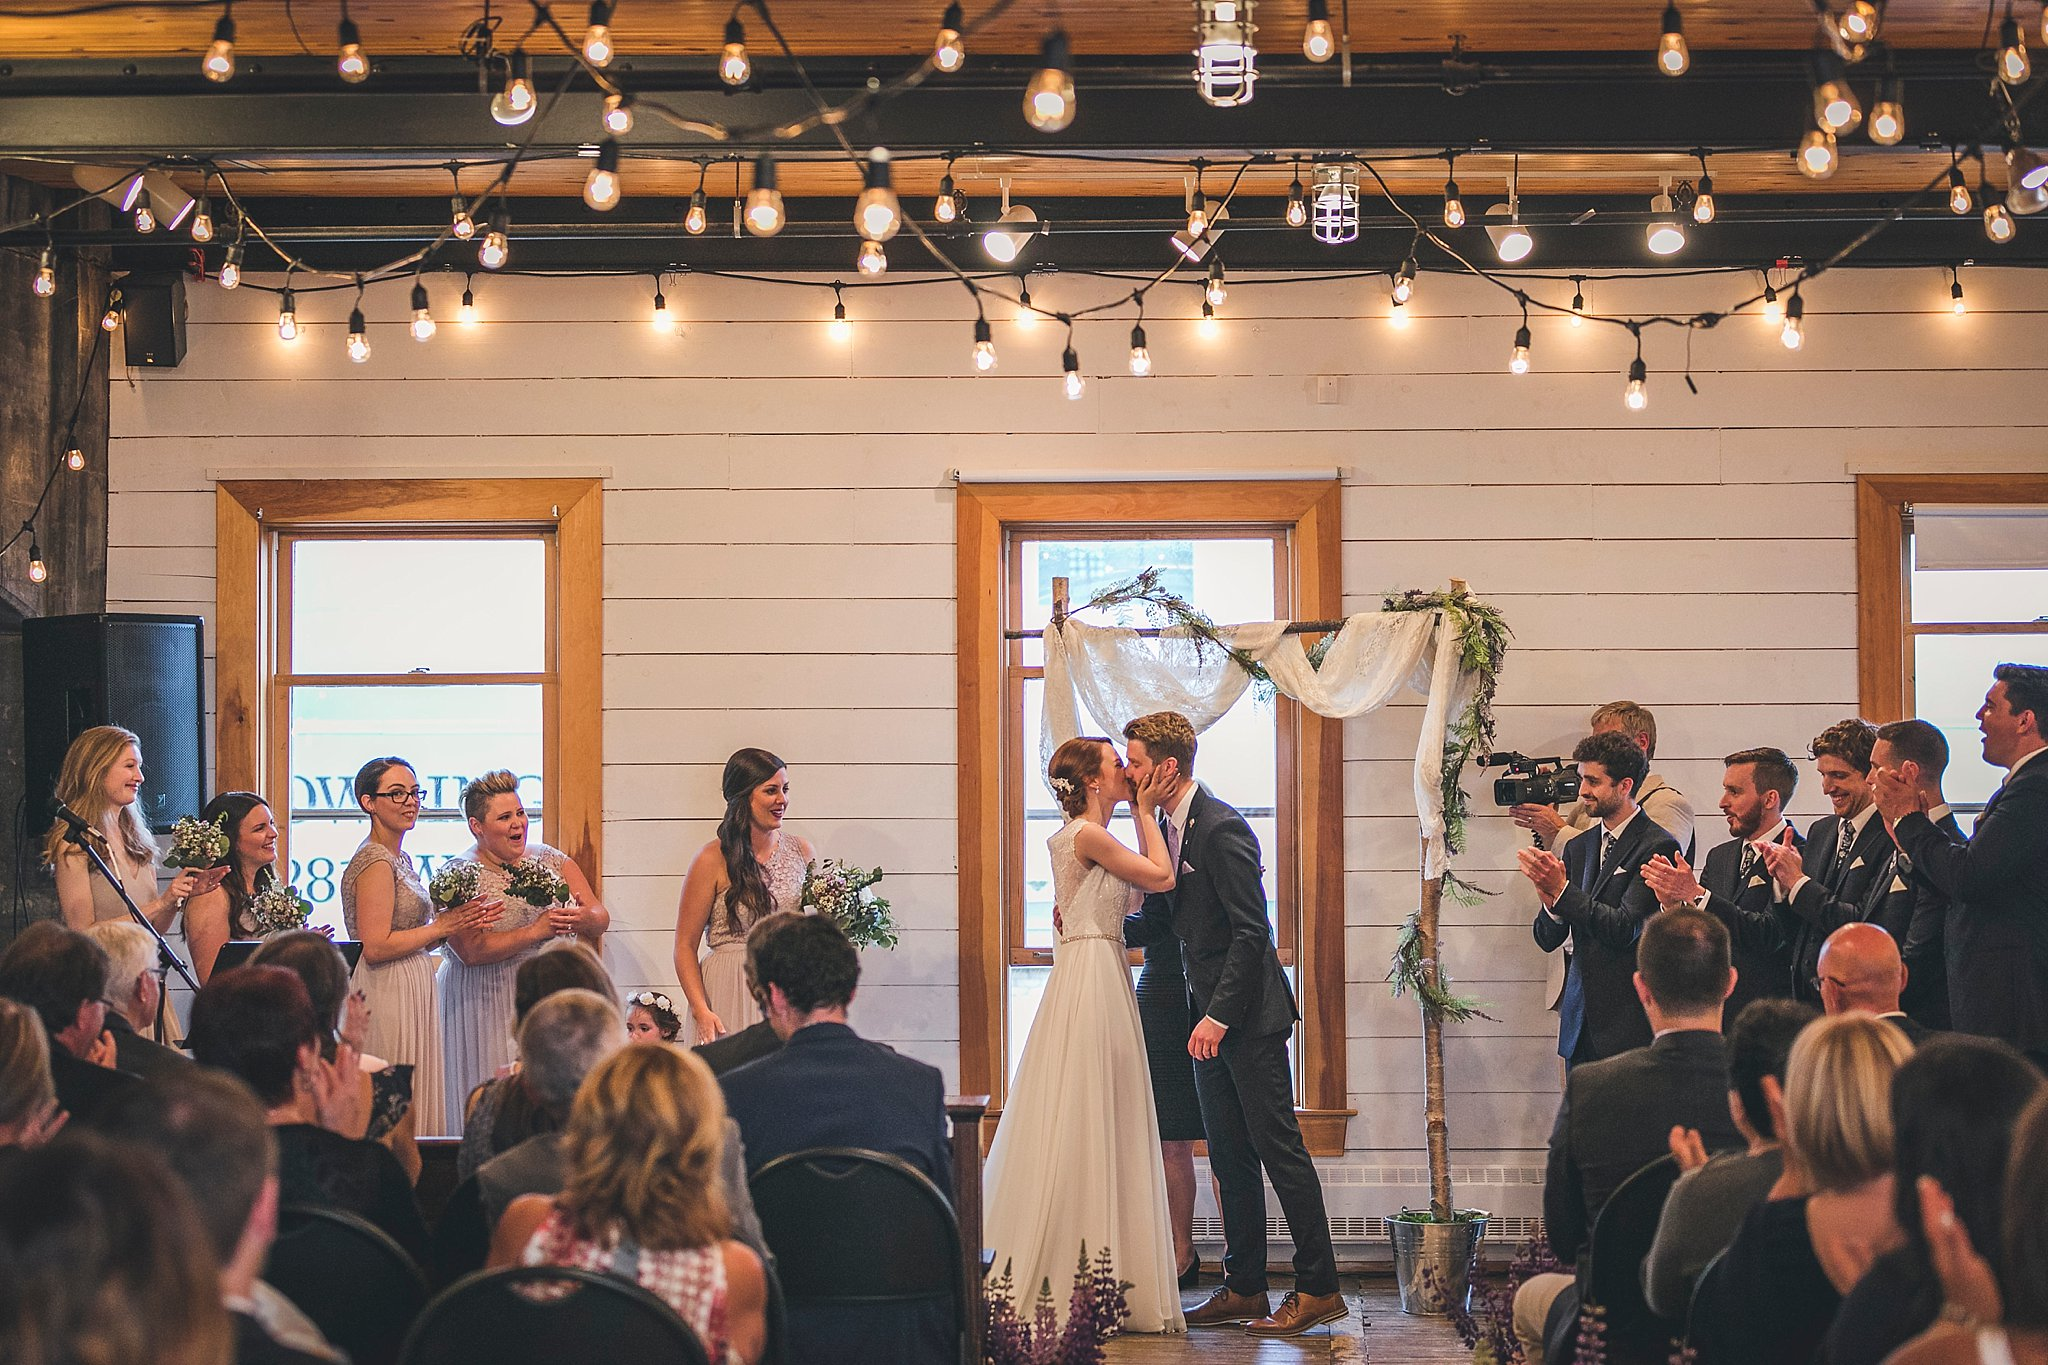 Wedding ceremony at the Rocket Room in downtown St. John's